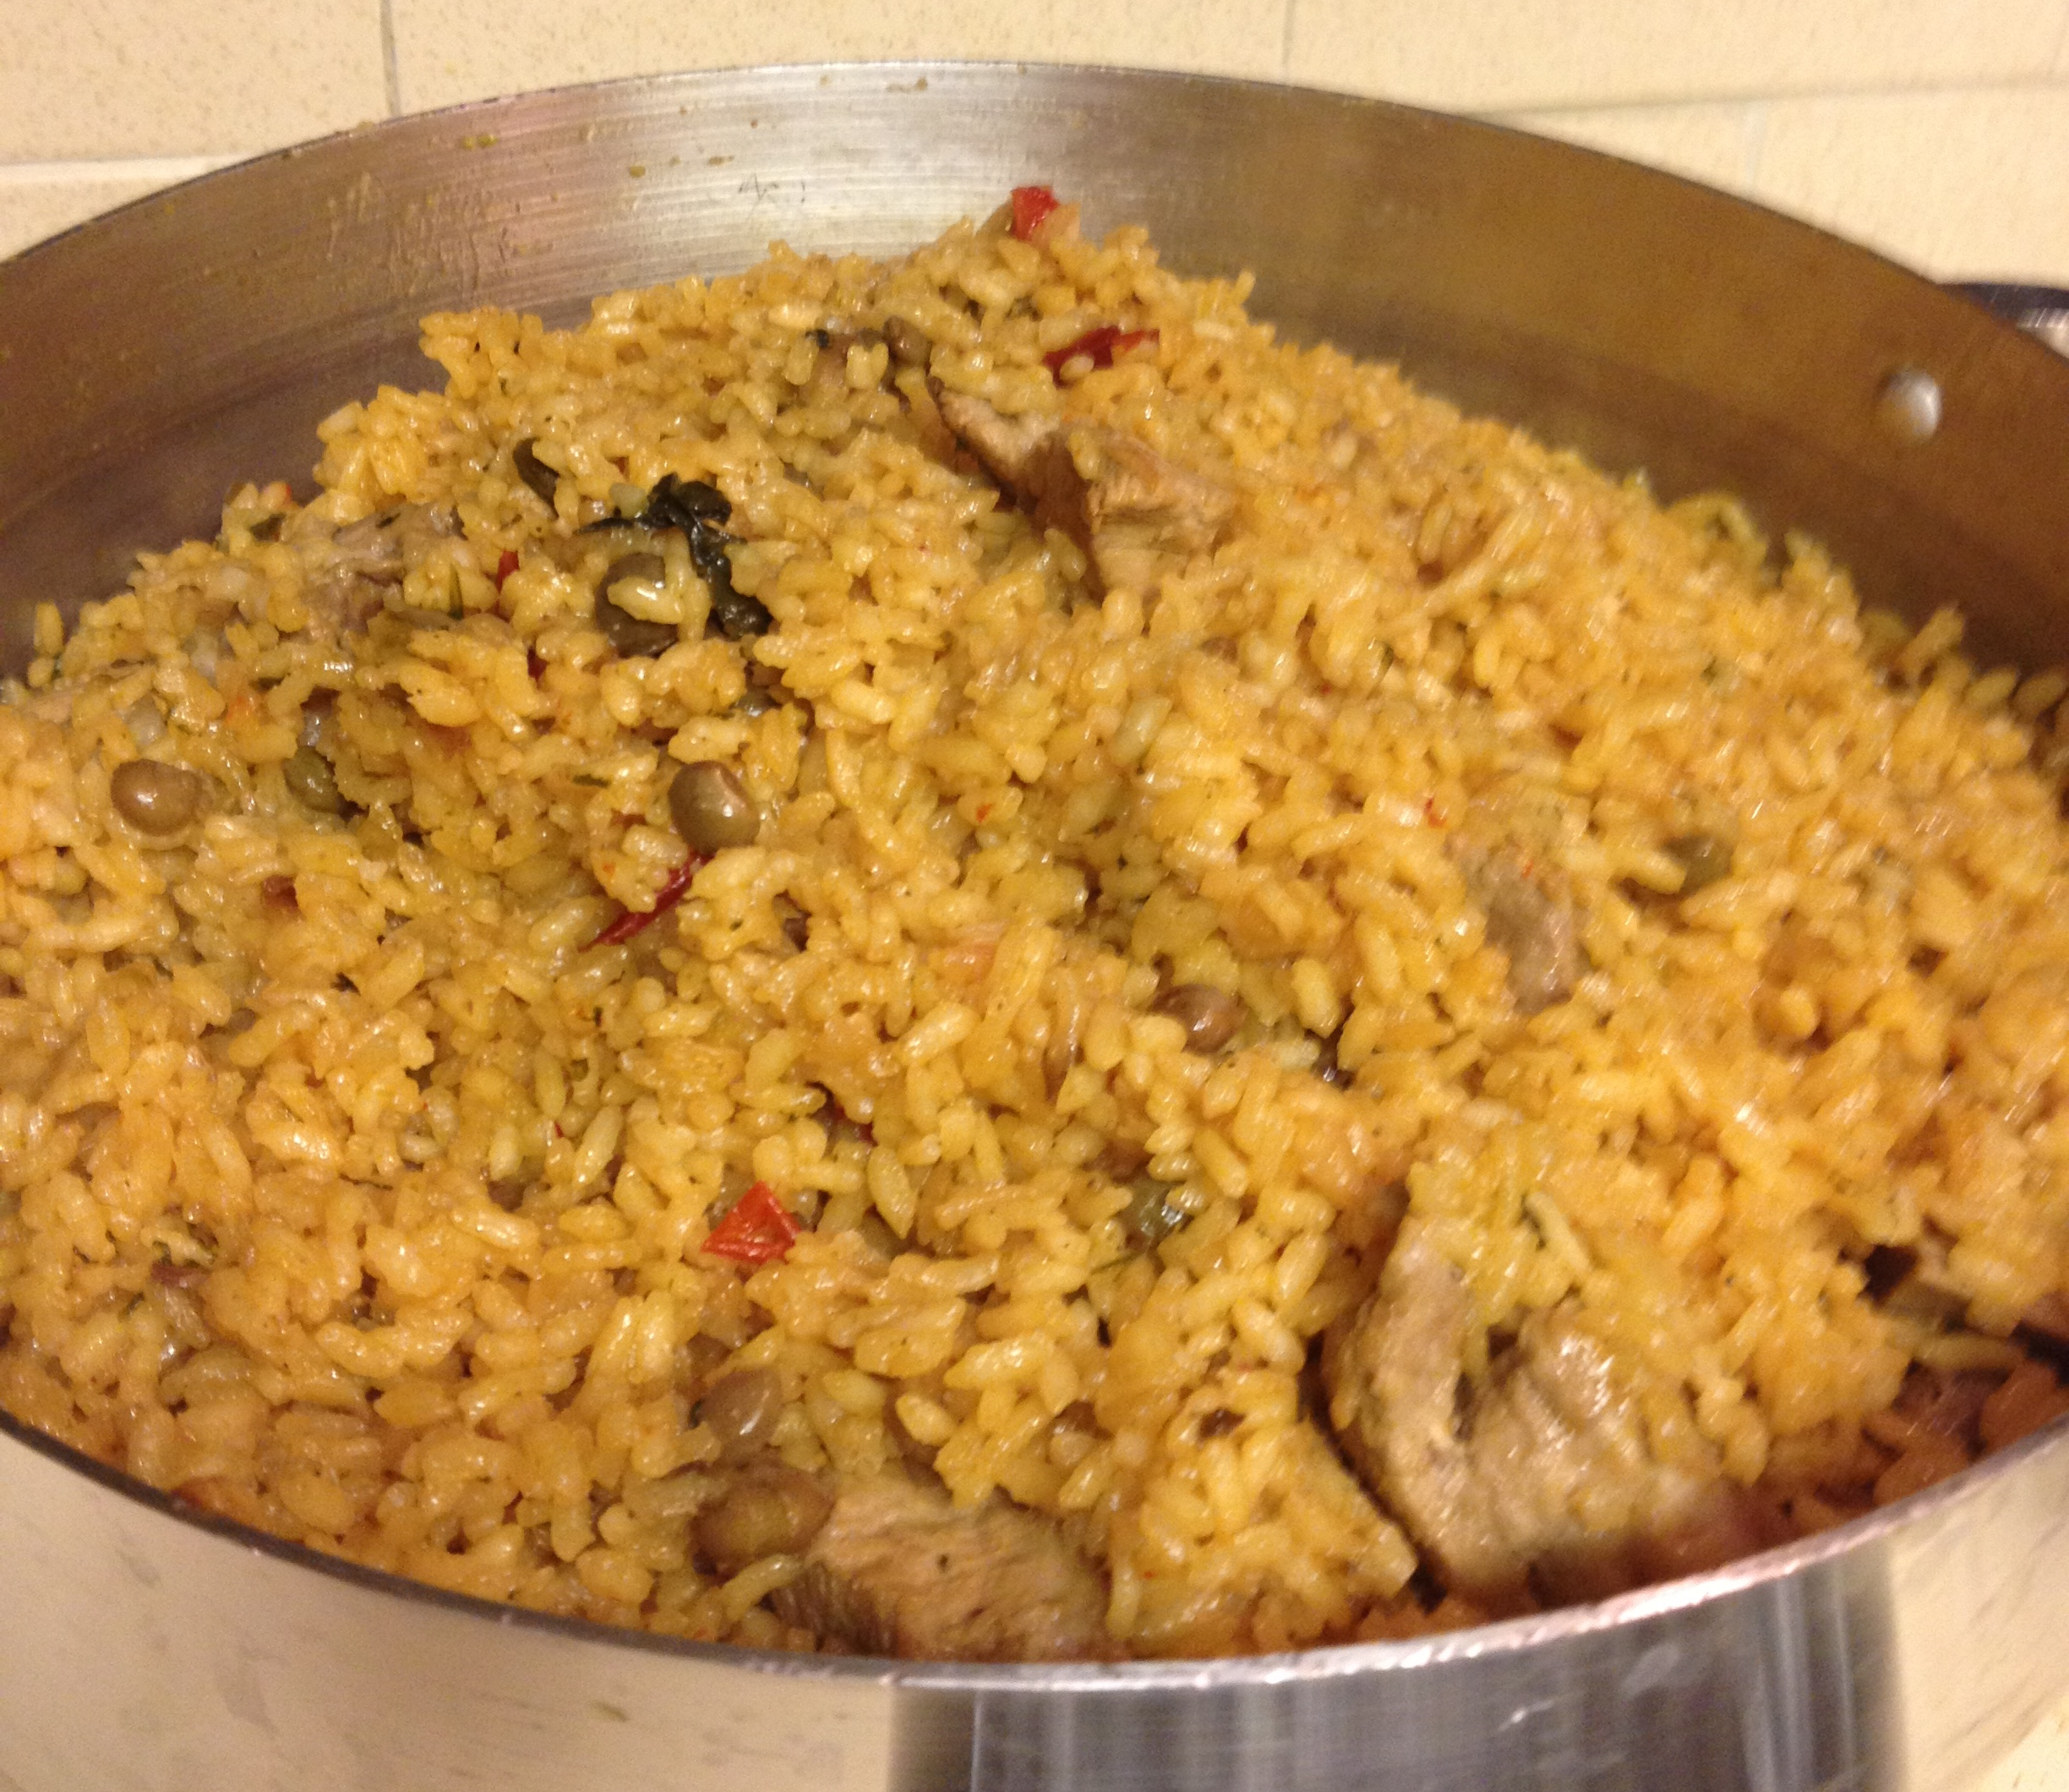 Rice, pigeon peas and ribs